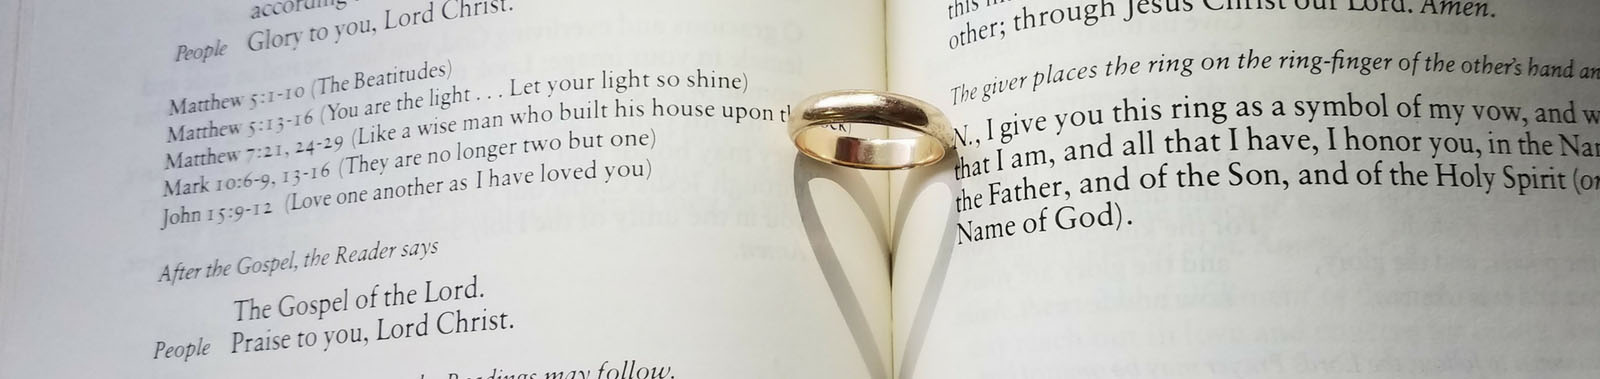 Marriage In The Episcopal Church Episcopal Diocese Of Fort Worth